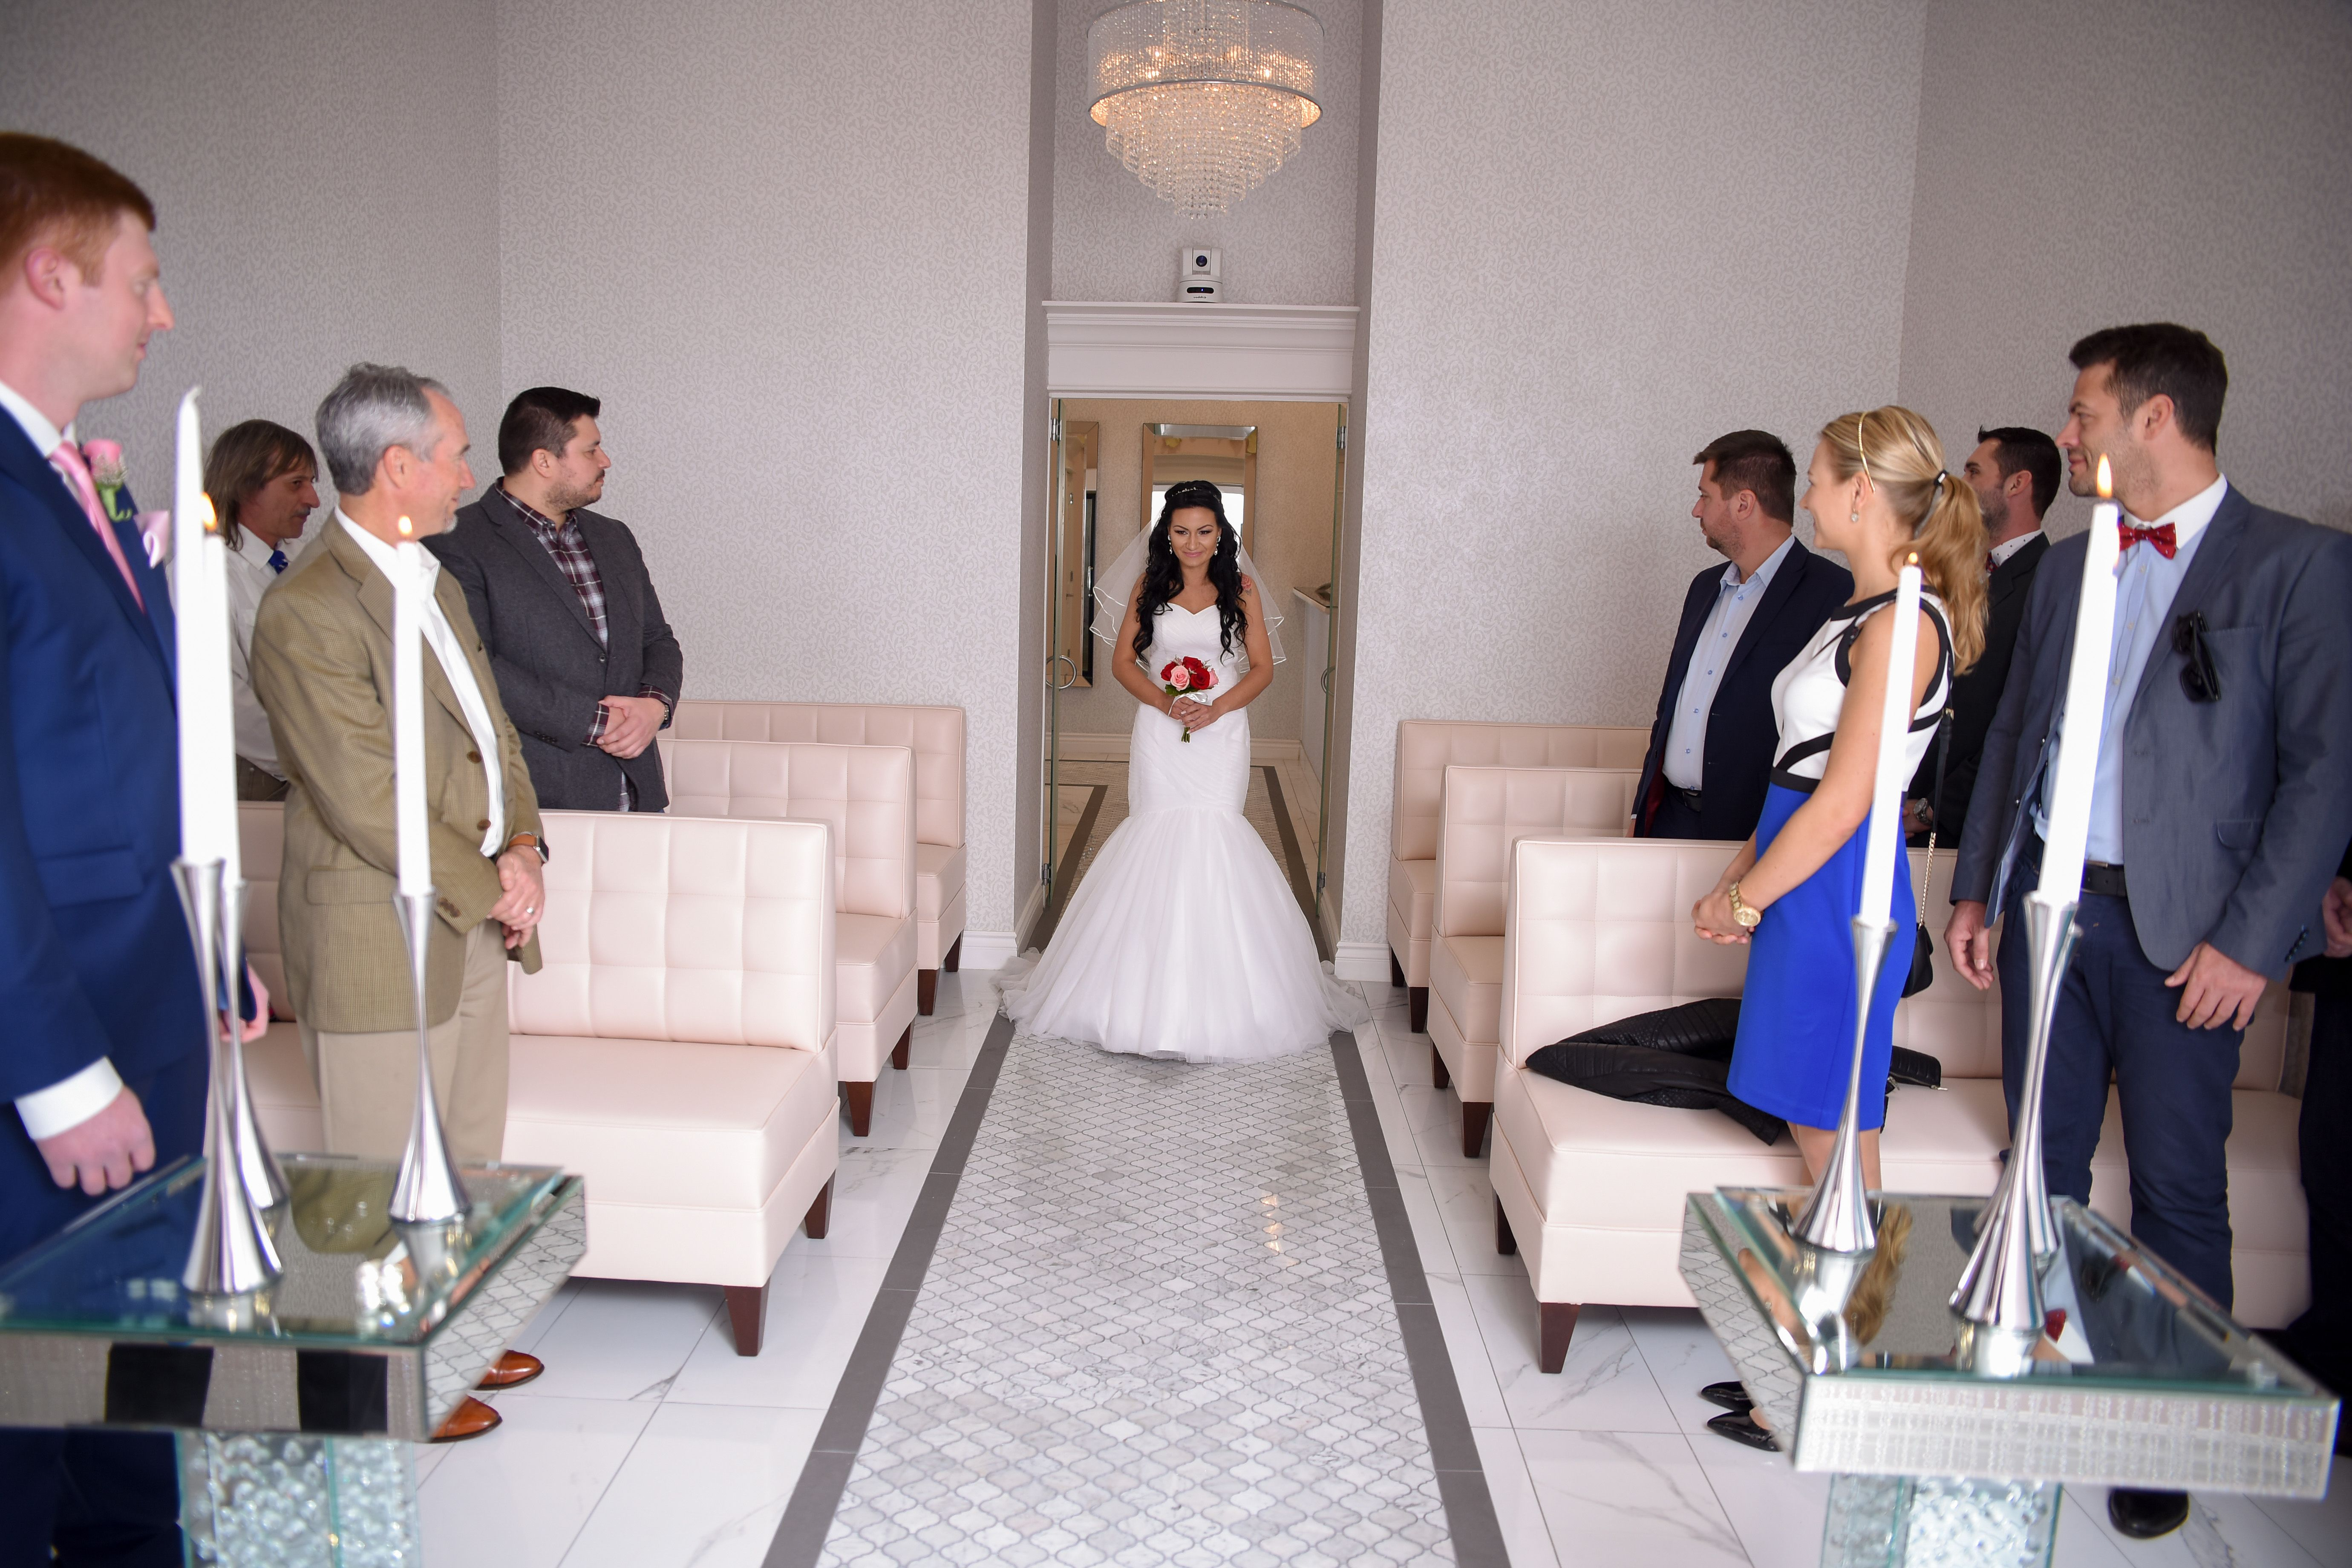 Glam And Chic Wedding Venue In Las Vegas Chapel Of The Flowers Offers All